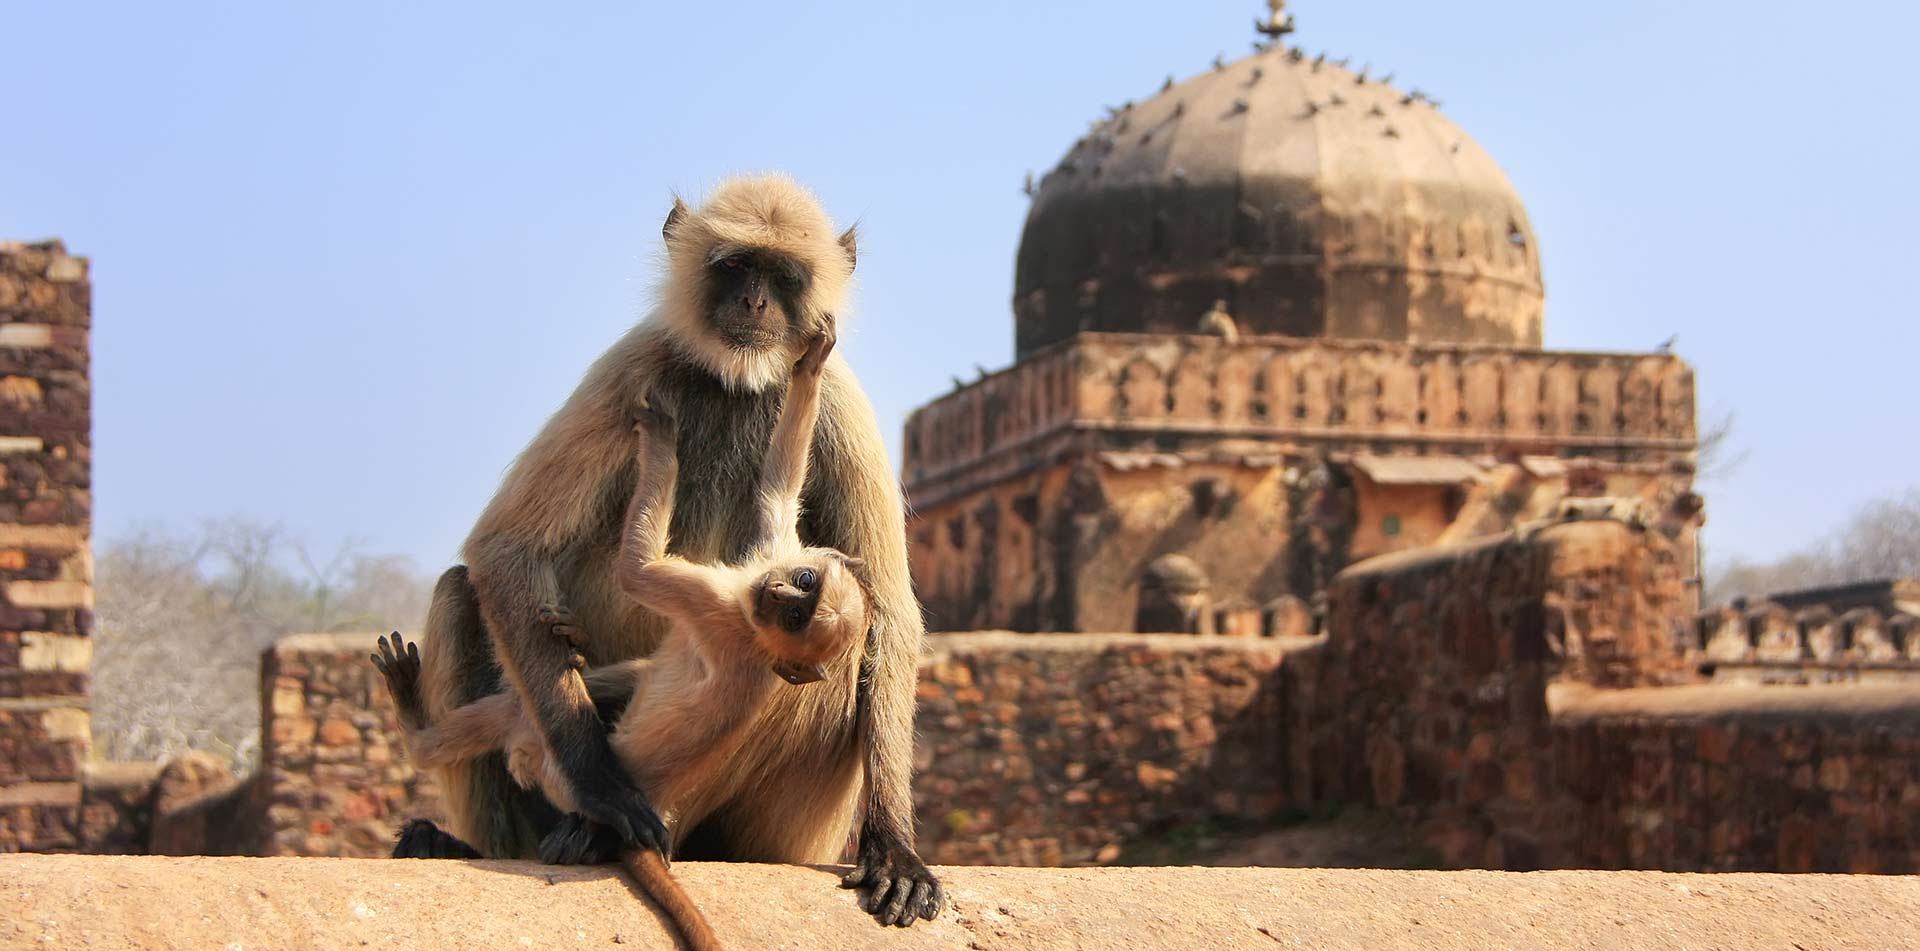 Monkey with a baby sitting at Ranthambore Fort, India